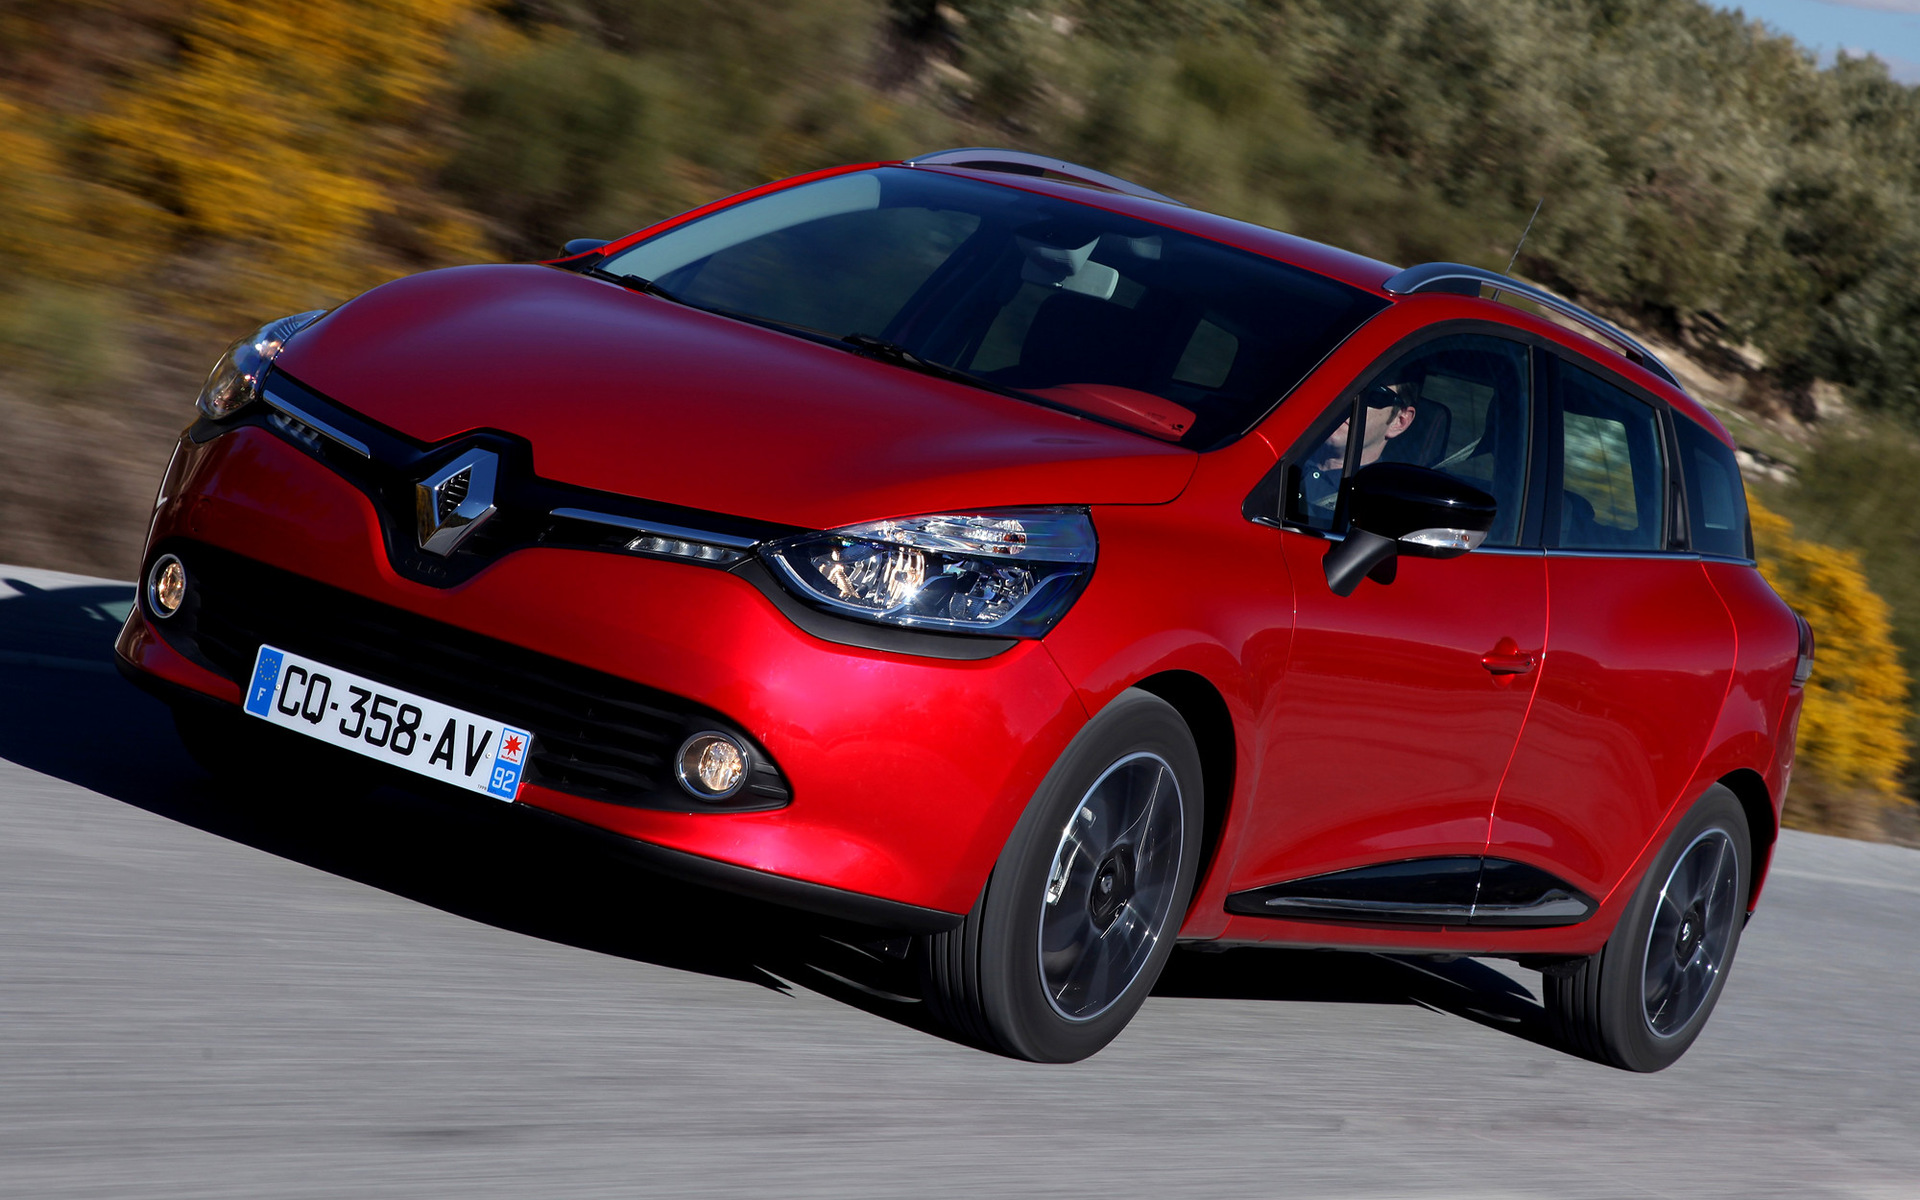 2013 renault clio estate wallpapers and hd images car pixel. Black Bedroom Furniture Sets. Home Design Ideas